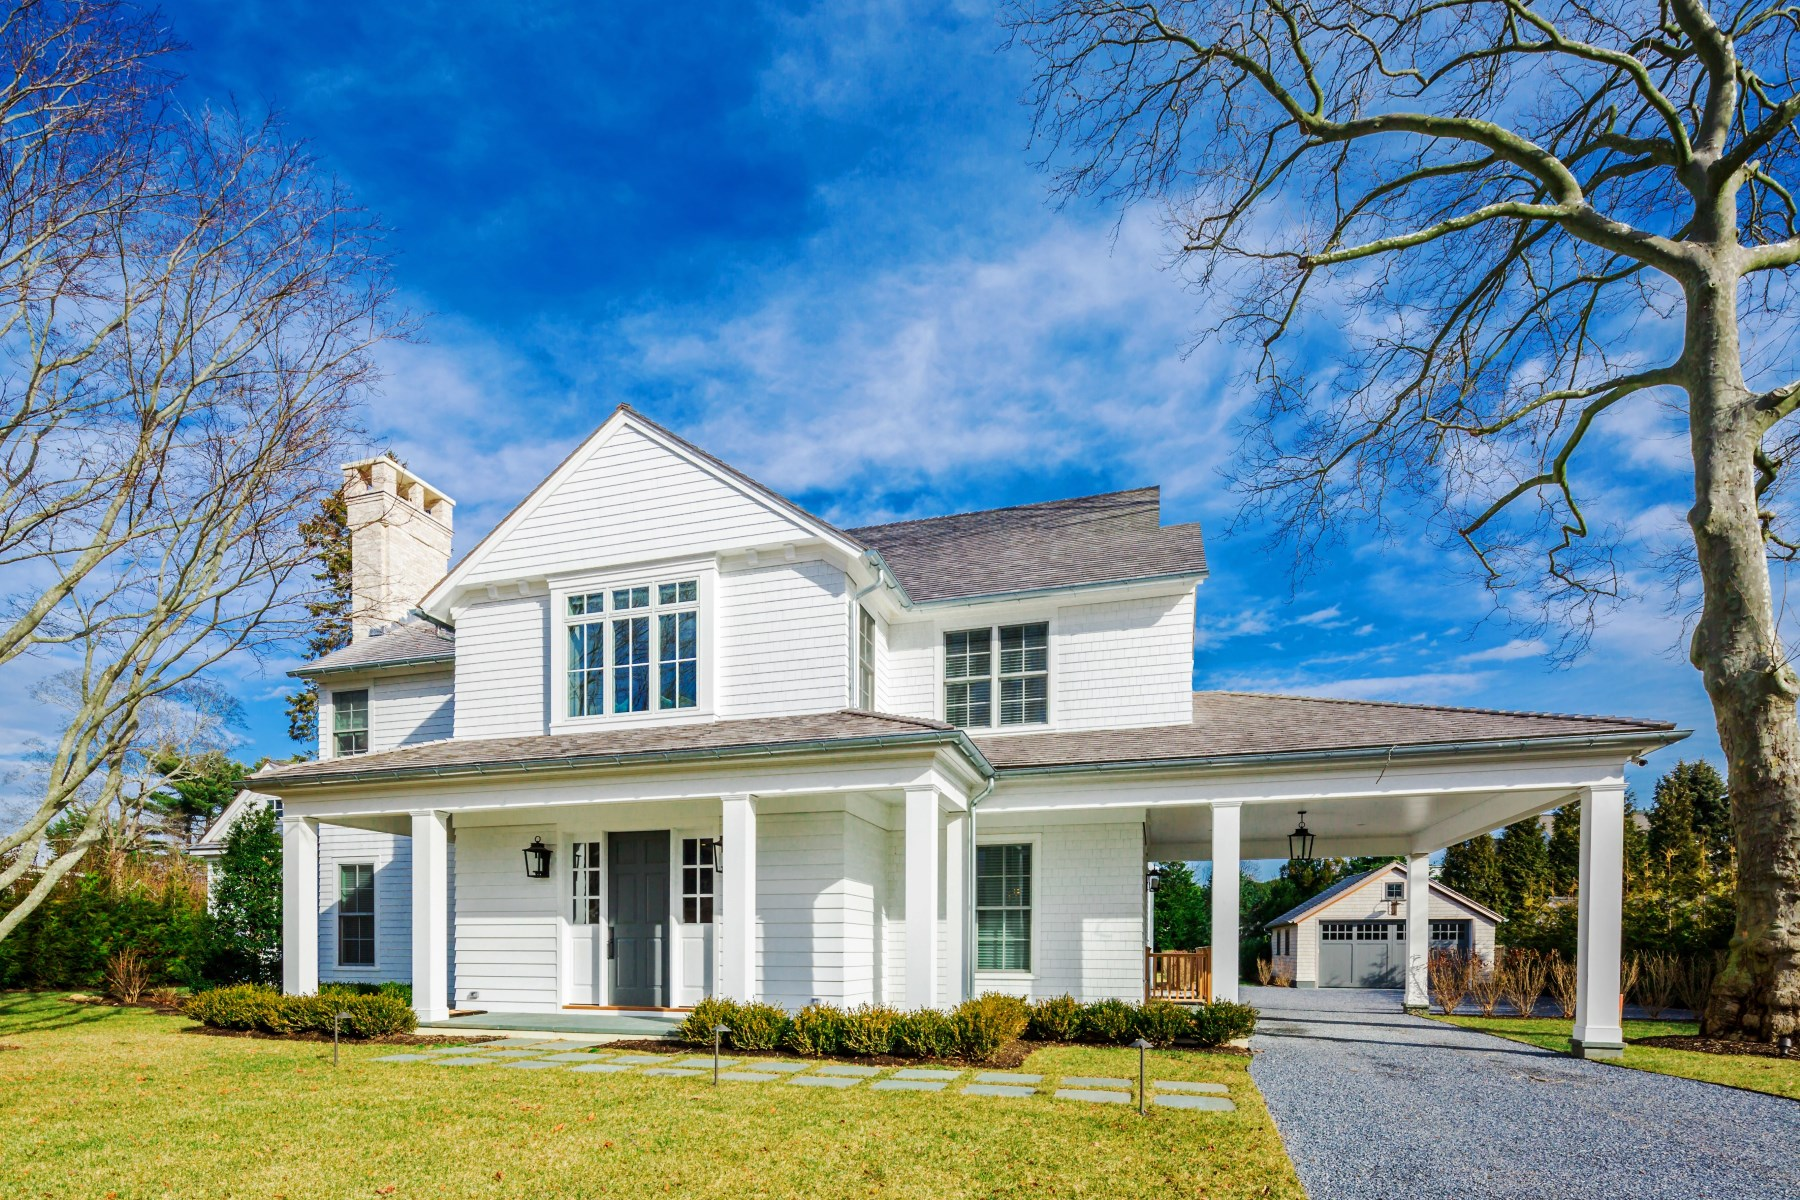 Single Family Home for Rent at Village New Construction, Guest Cottage Southampton, New York, 11968 United States